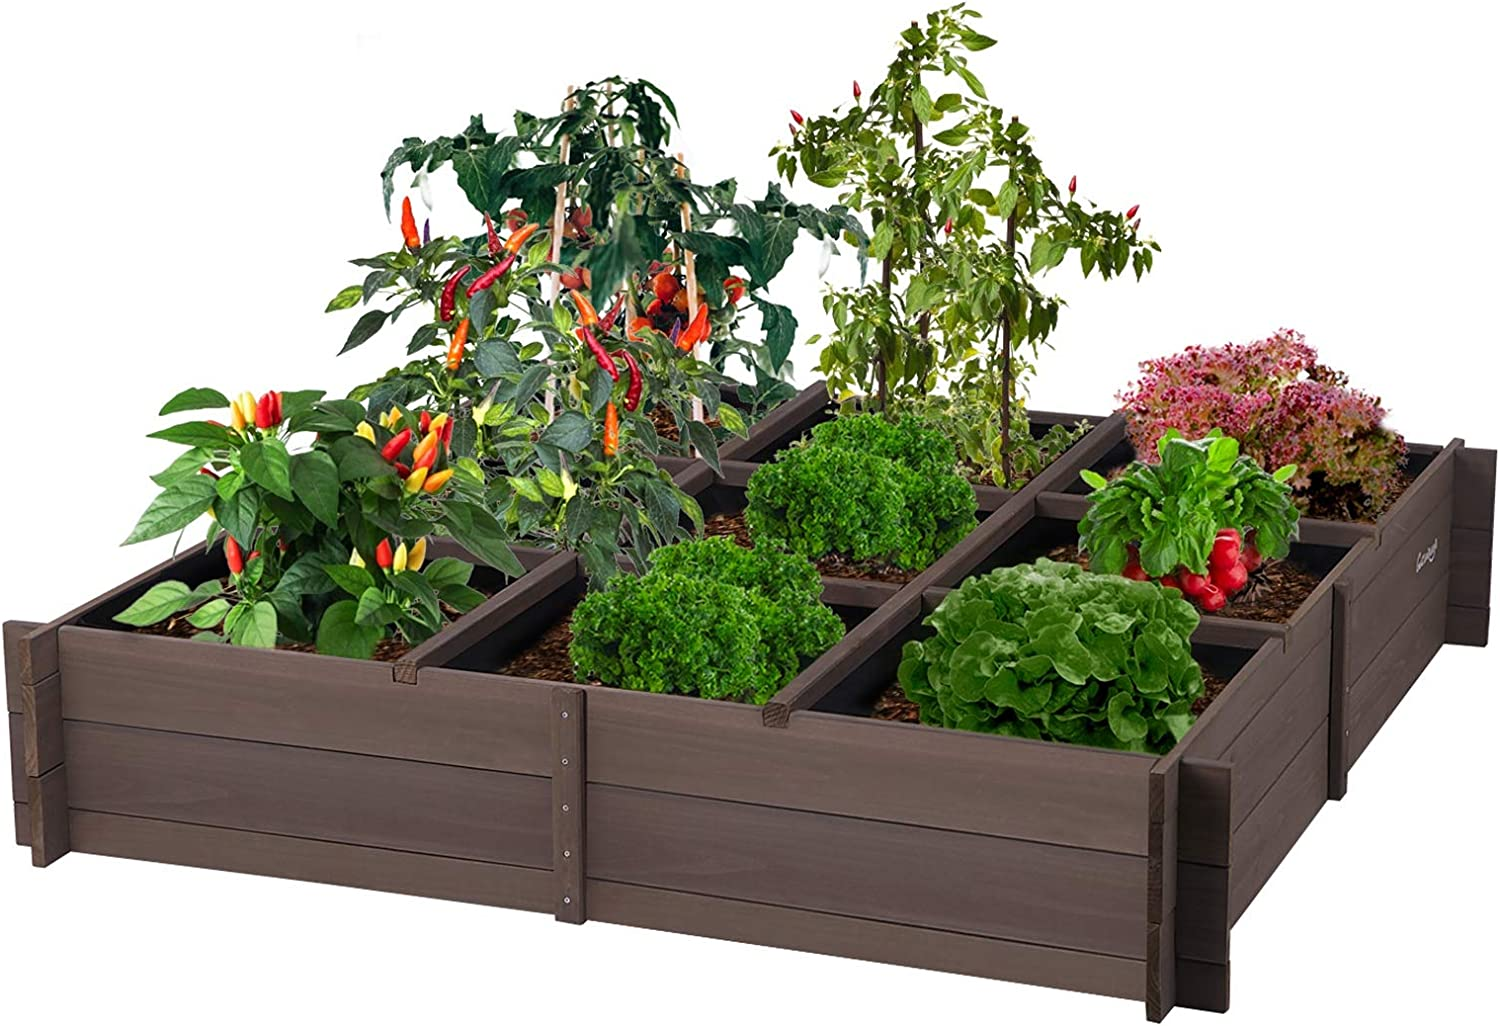 Planter Box Raised Garden Bed for Vegetables ,Flower Bed Outdoor with Inner Lining 51.6